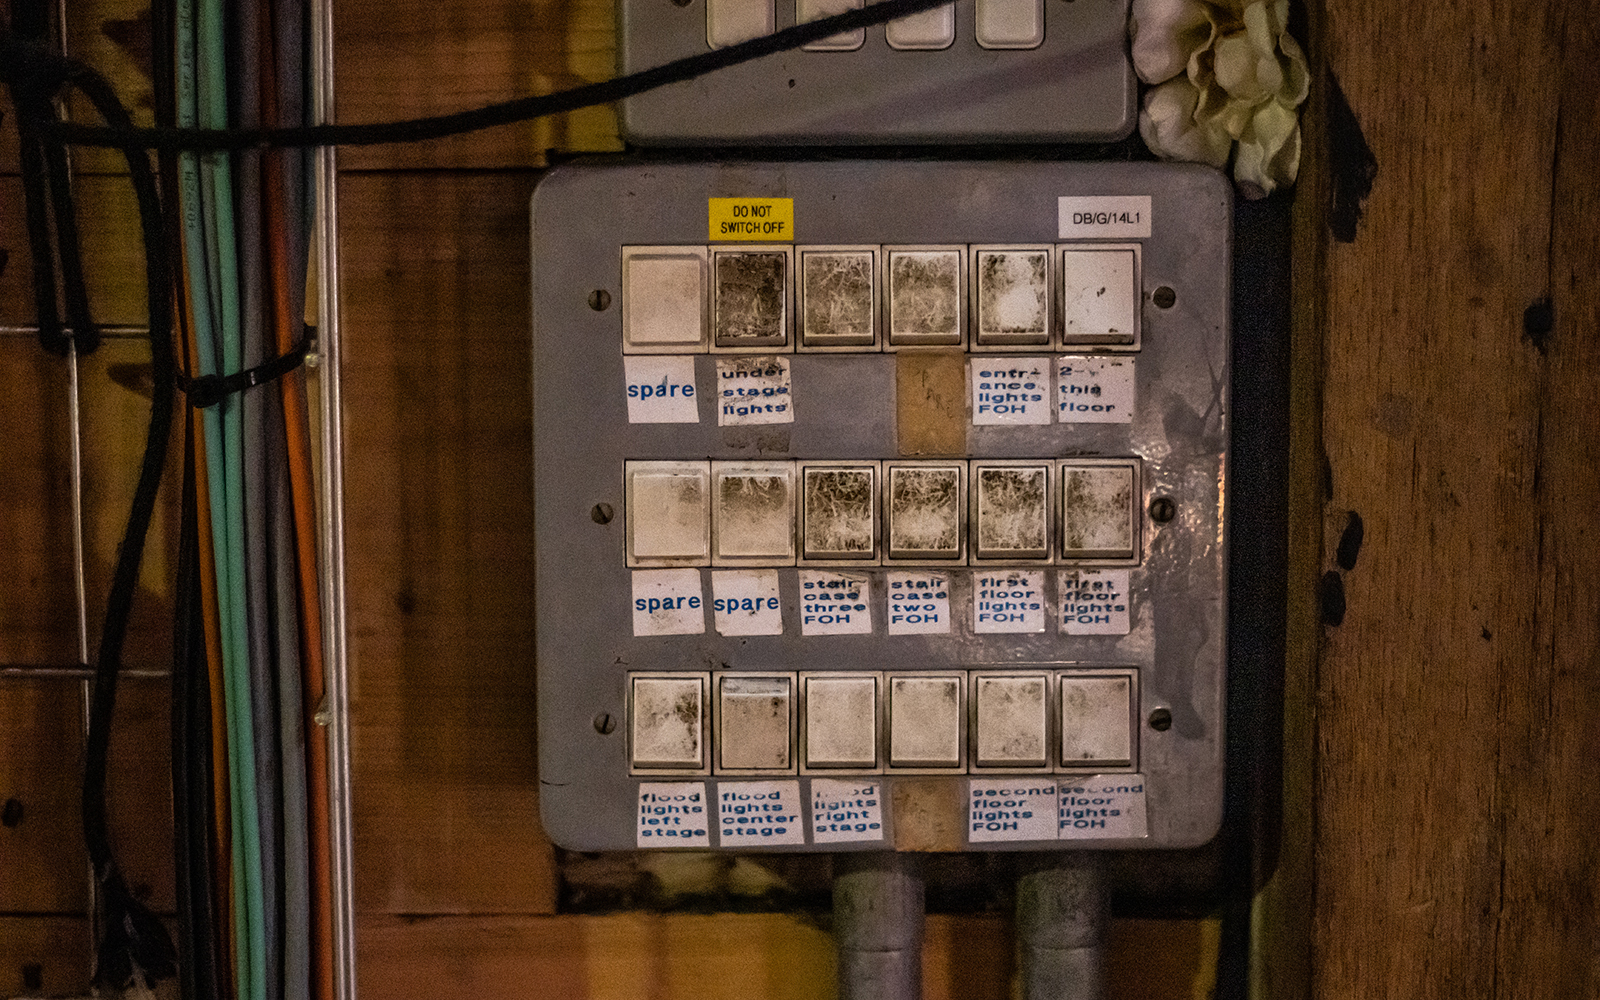 A grey electrical box, with lightswitches covered in homemade labels